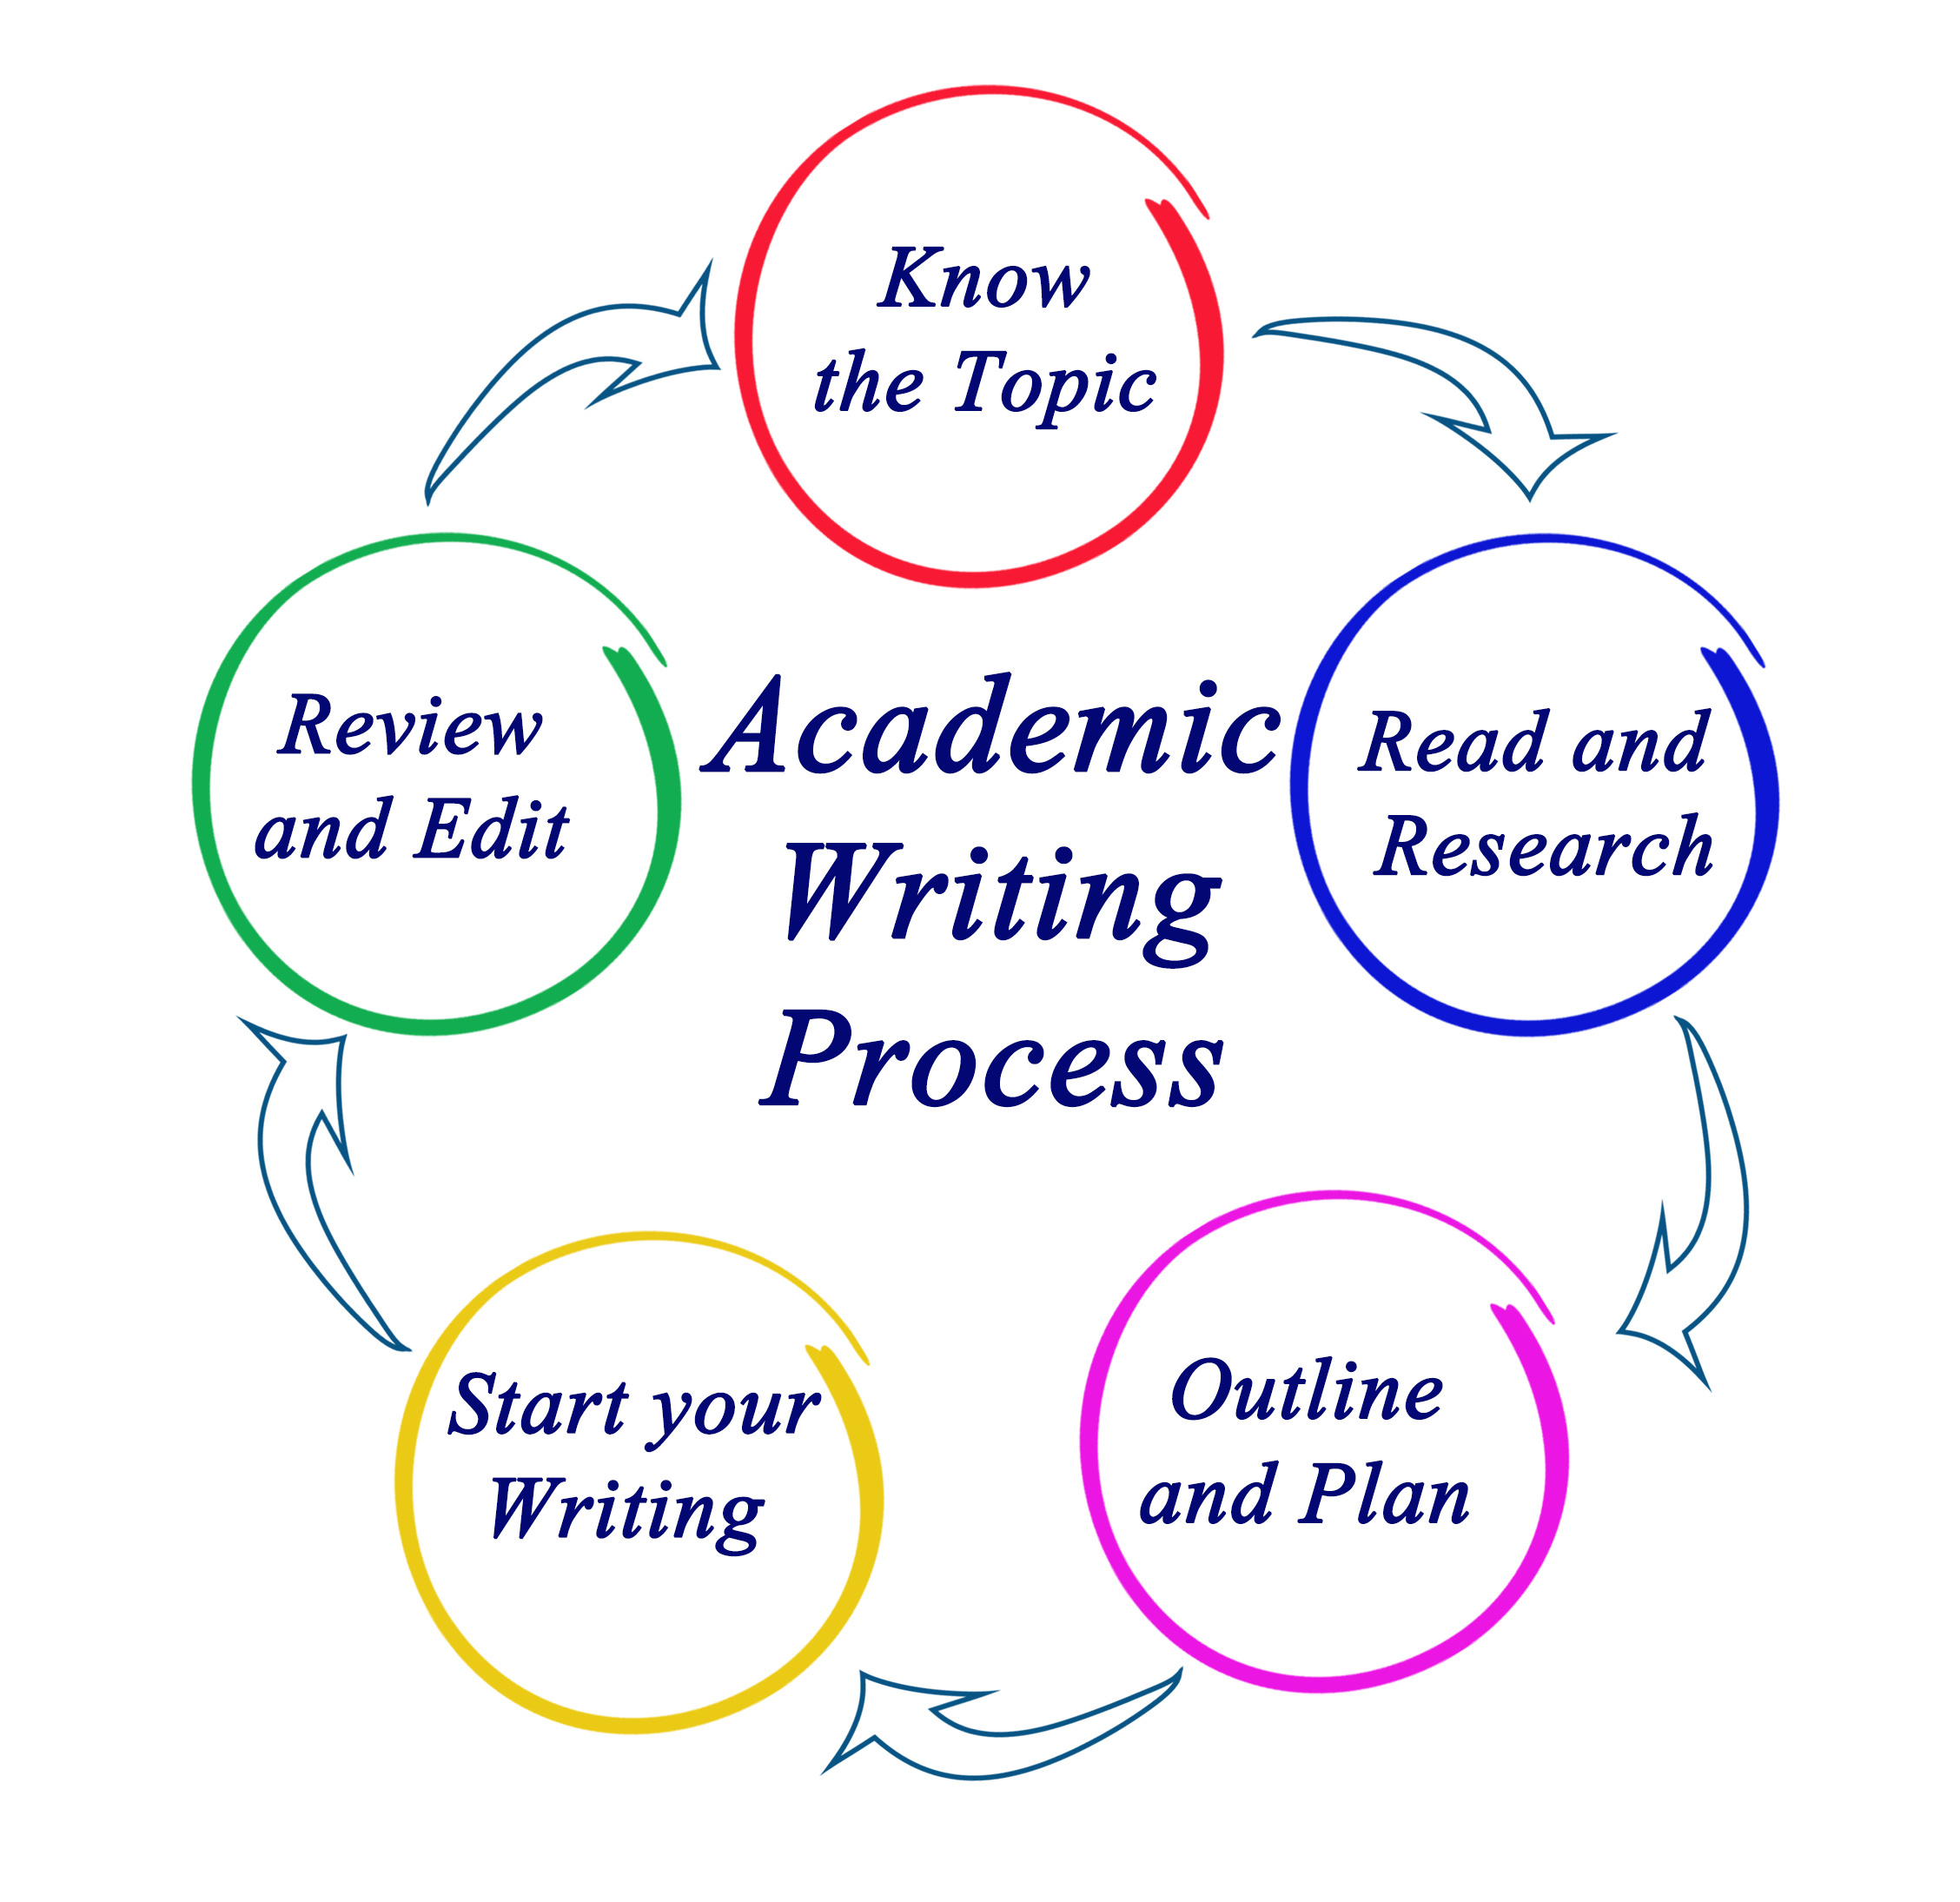 academic writing in content writing course source https://vox.divinity.edu.au/event/academic-skills-writing-workshop/